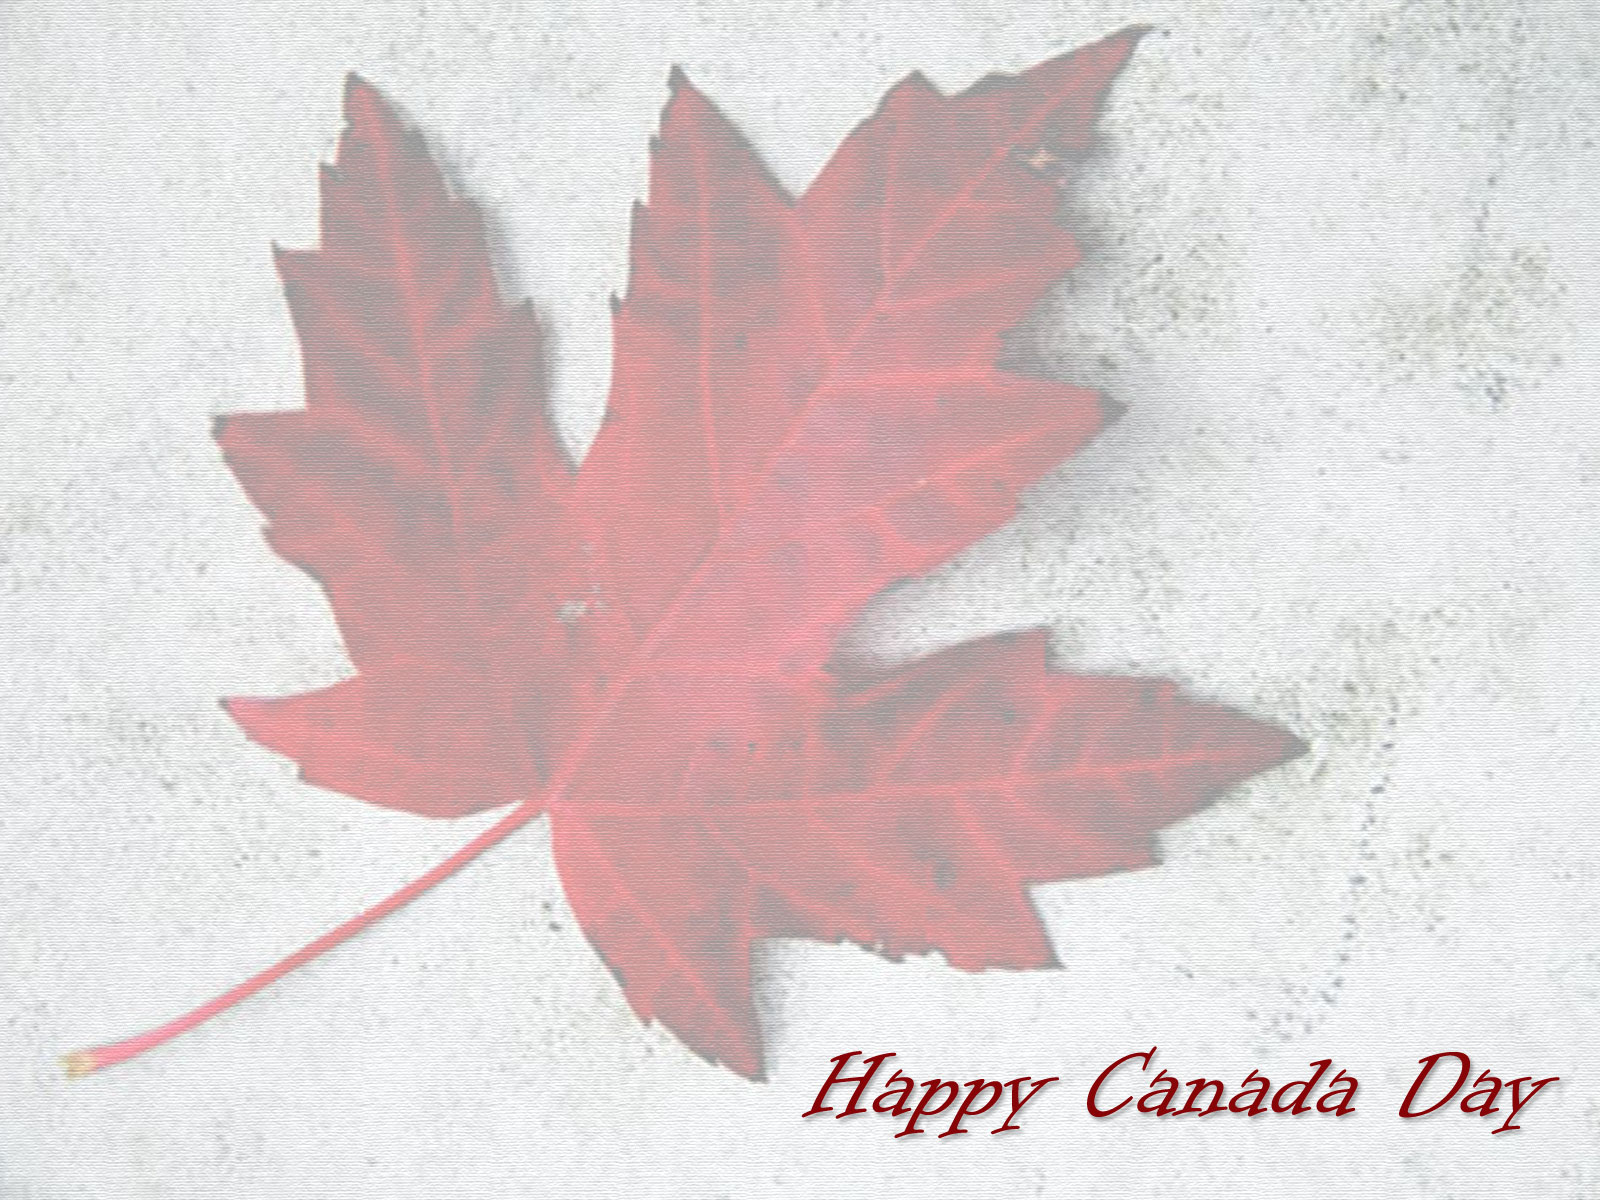 happy canada day hd wallpapers cover pictures images with best wishes (5)